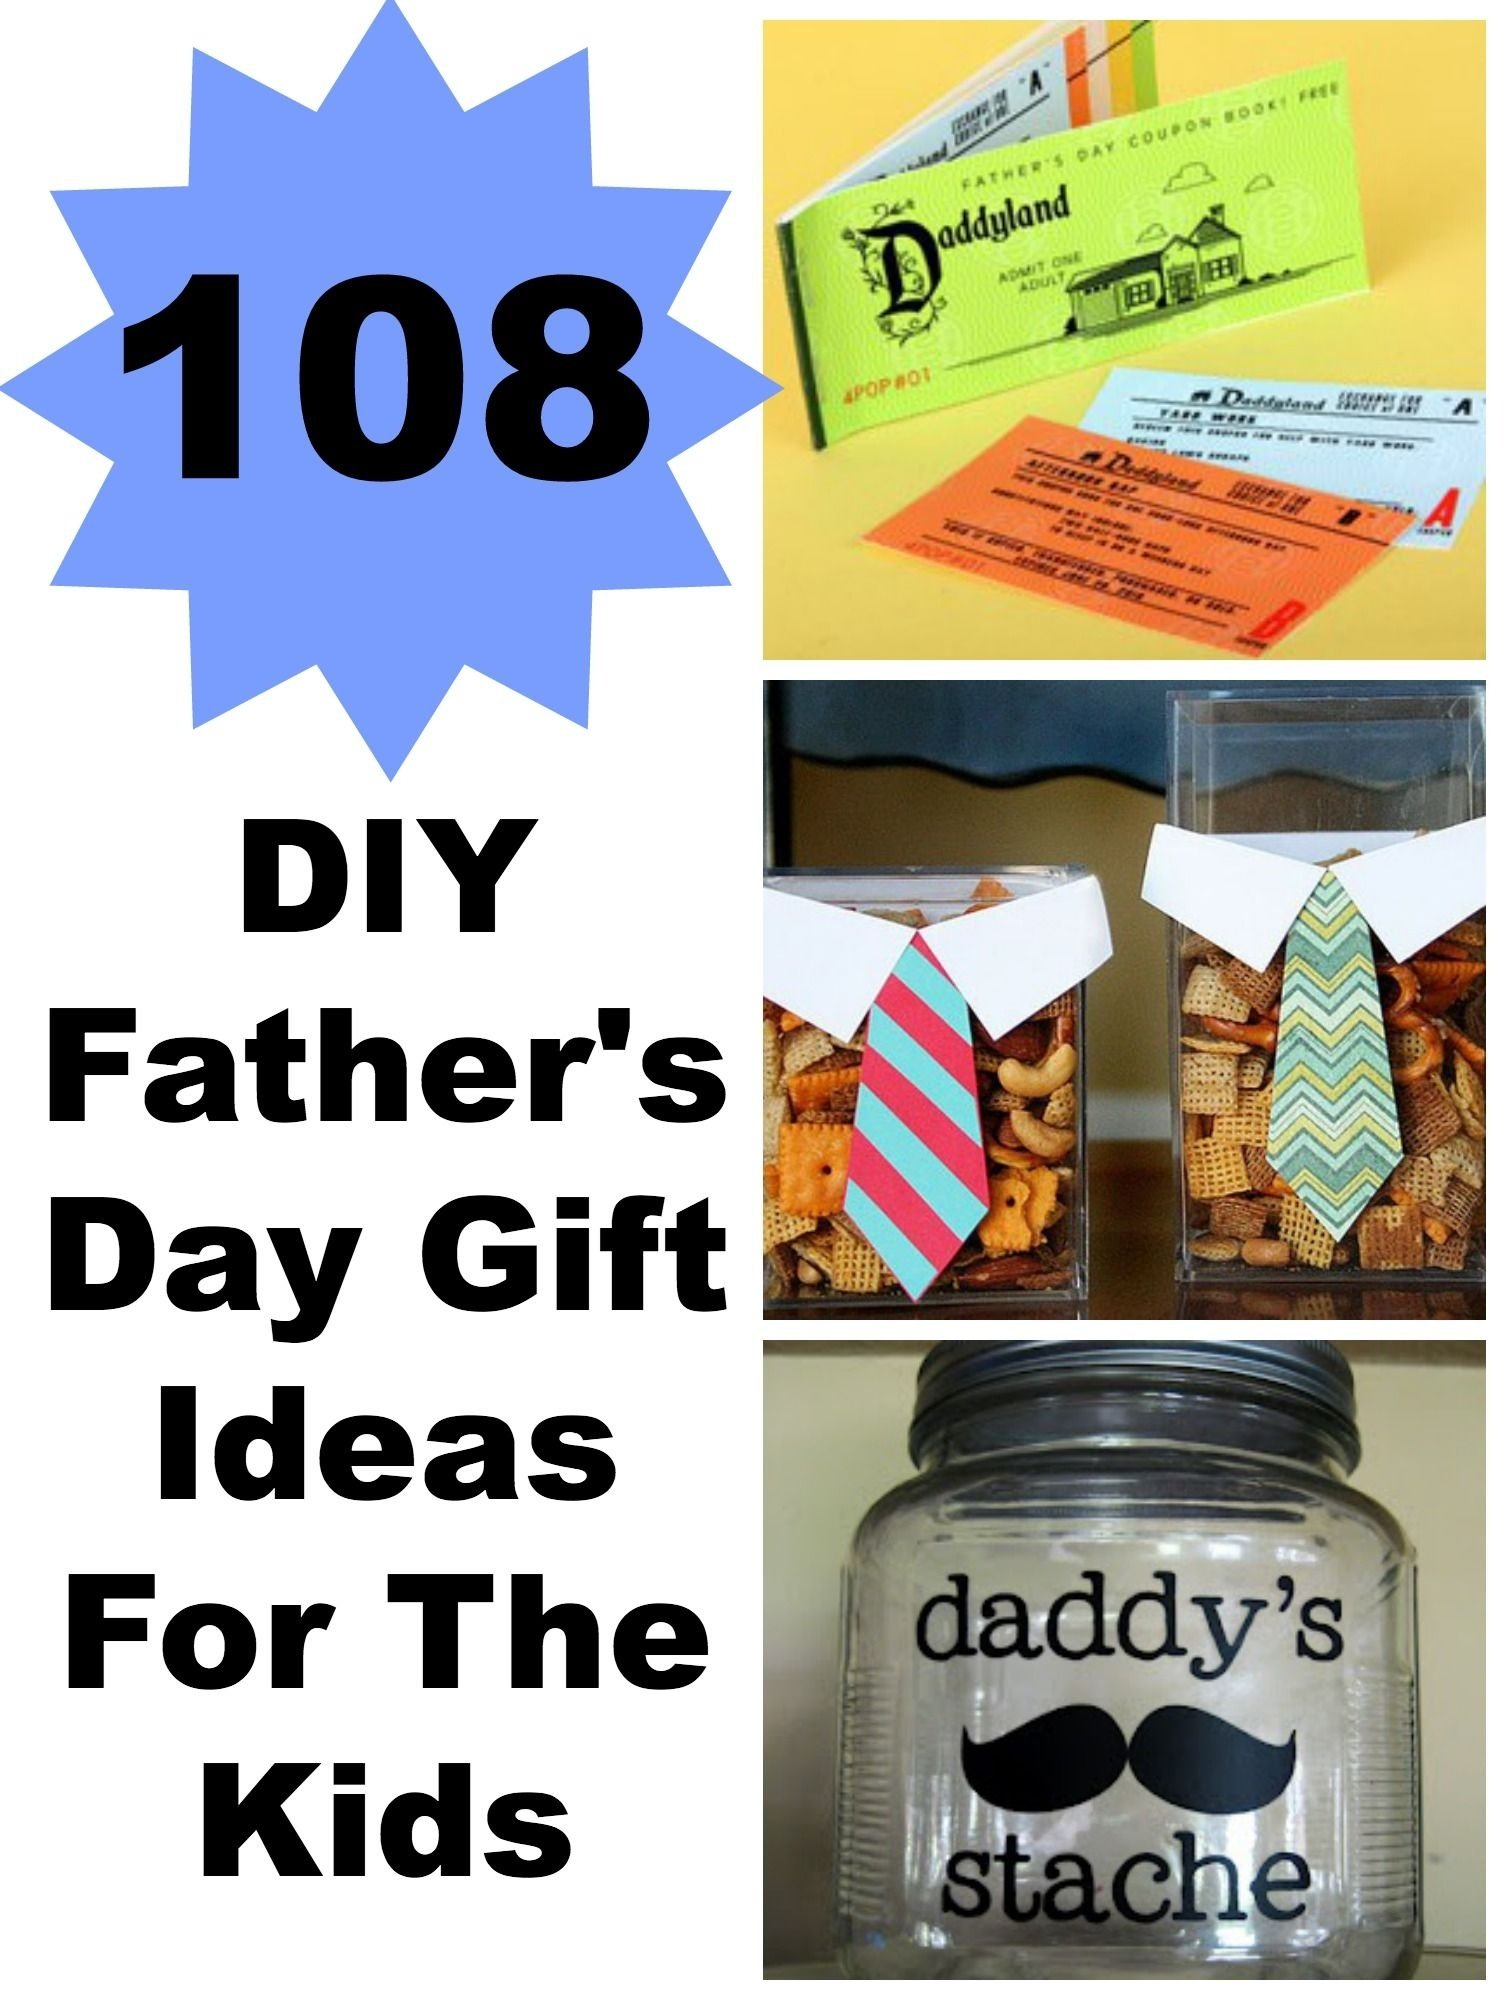 10 Elegant Homemade Gift Ideas For Dad 108 diy fathers day gift ideas for the kids easy diy projects 6 2021